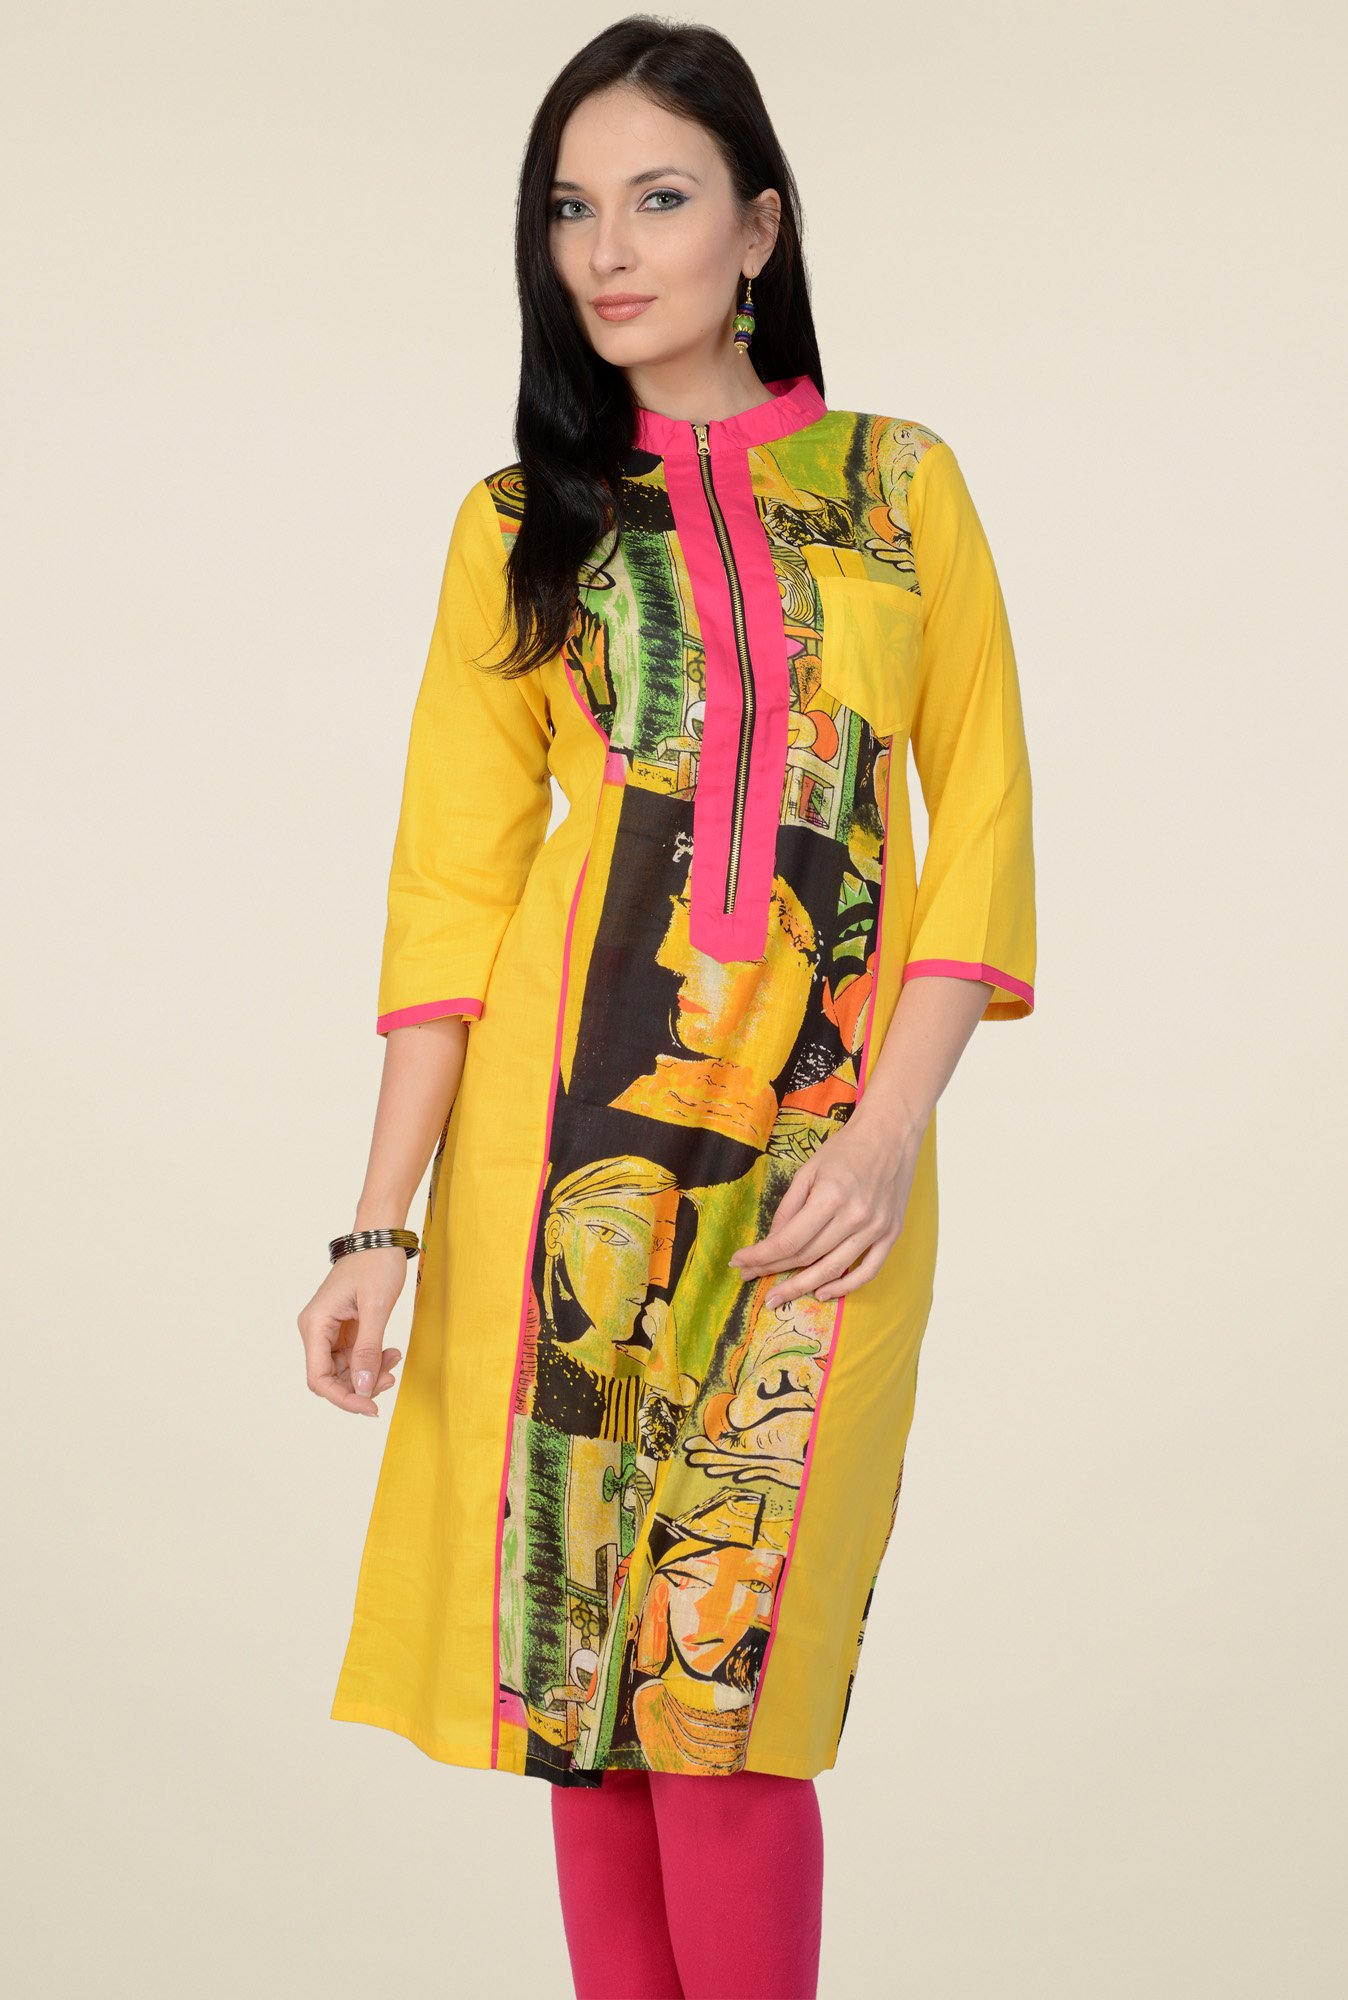 Pannkh Yellow 3/4th Sleeves Printed Kurti